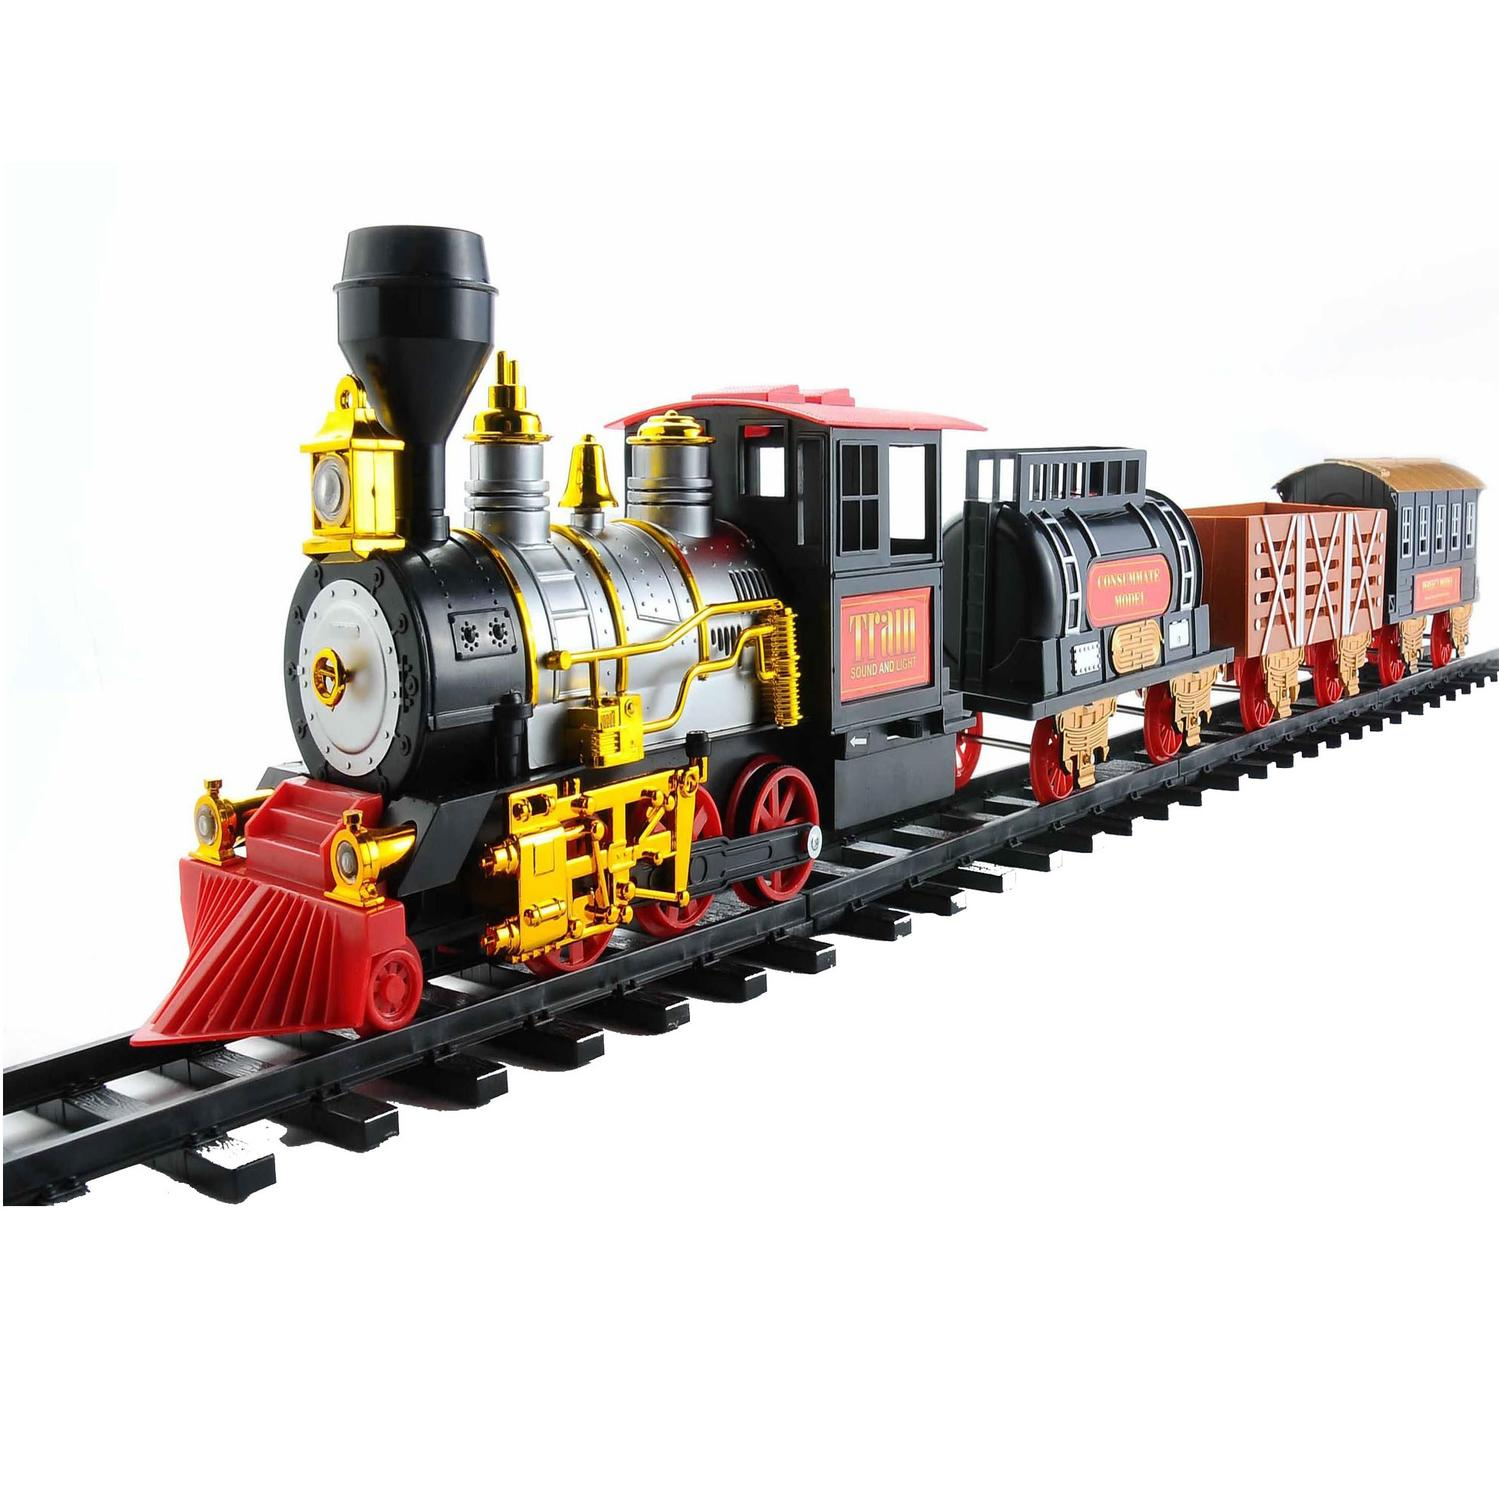 20-Piece Battery Operated Lighted and Animated Classics Train Set with Sound - image 2 de 2